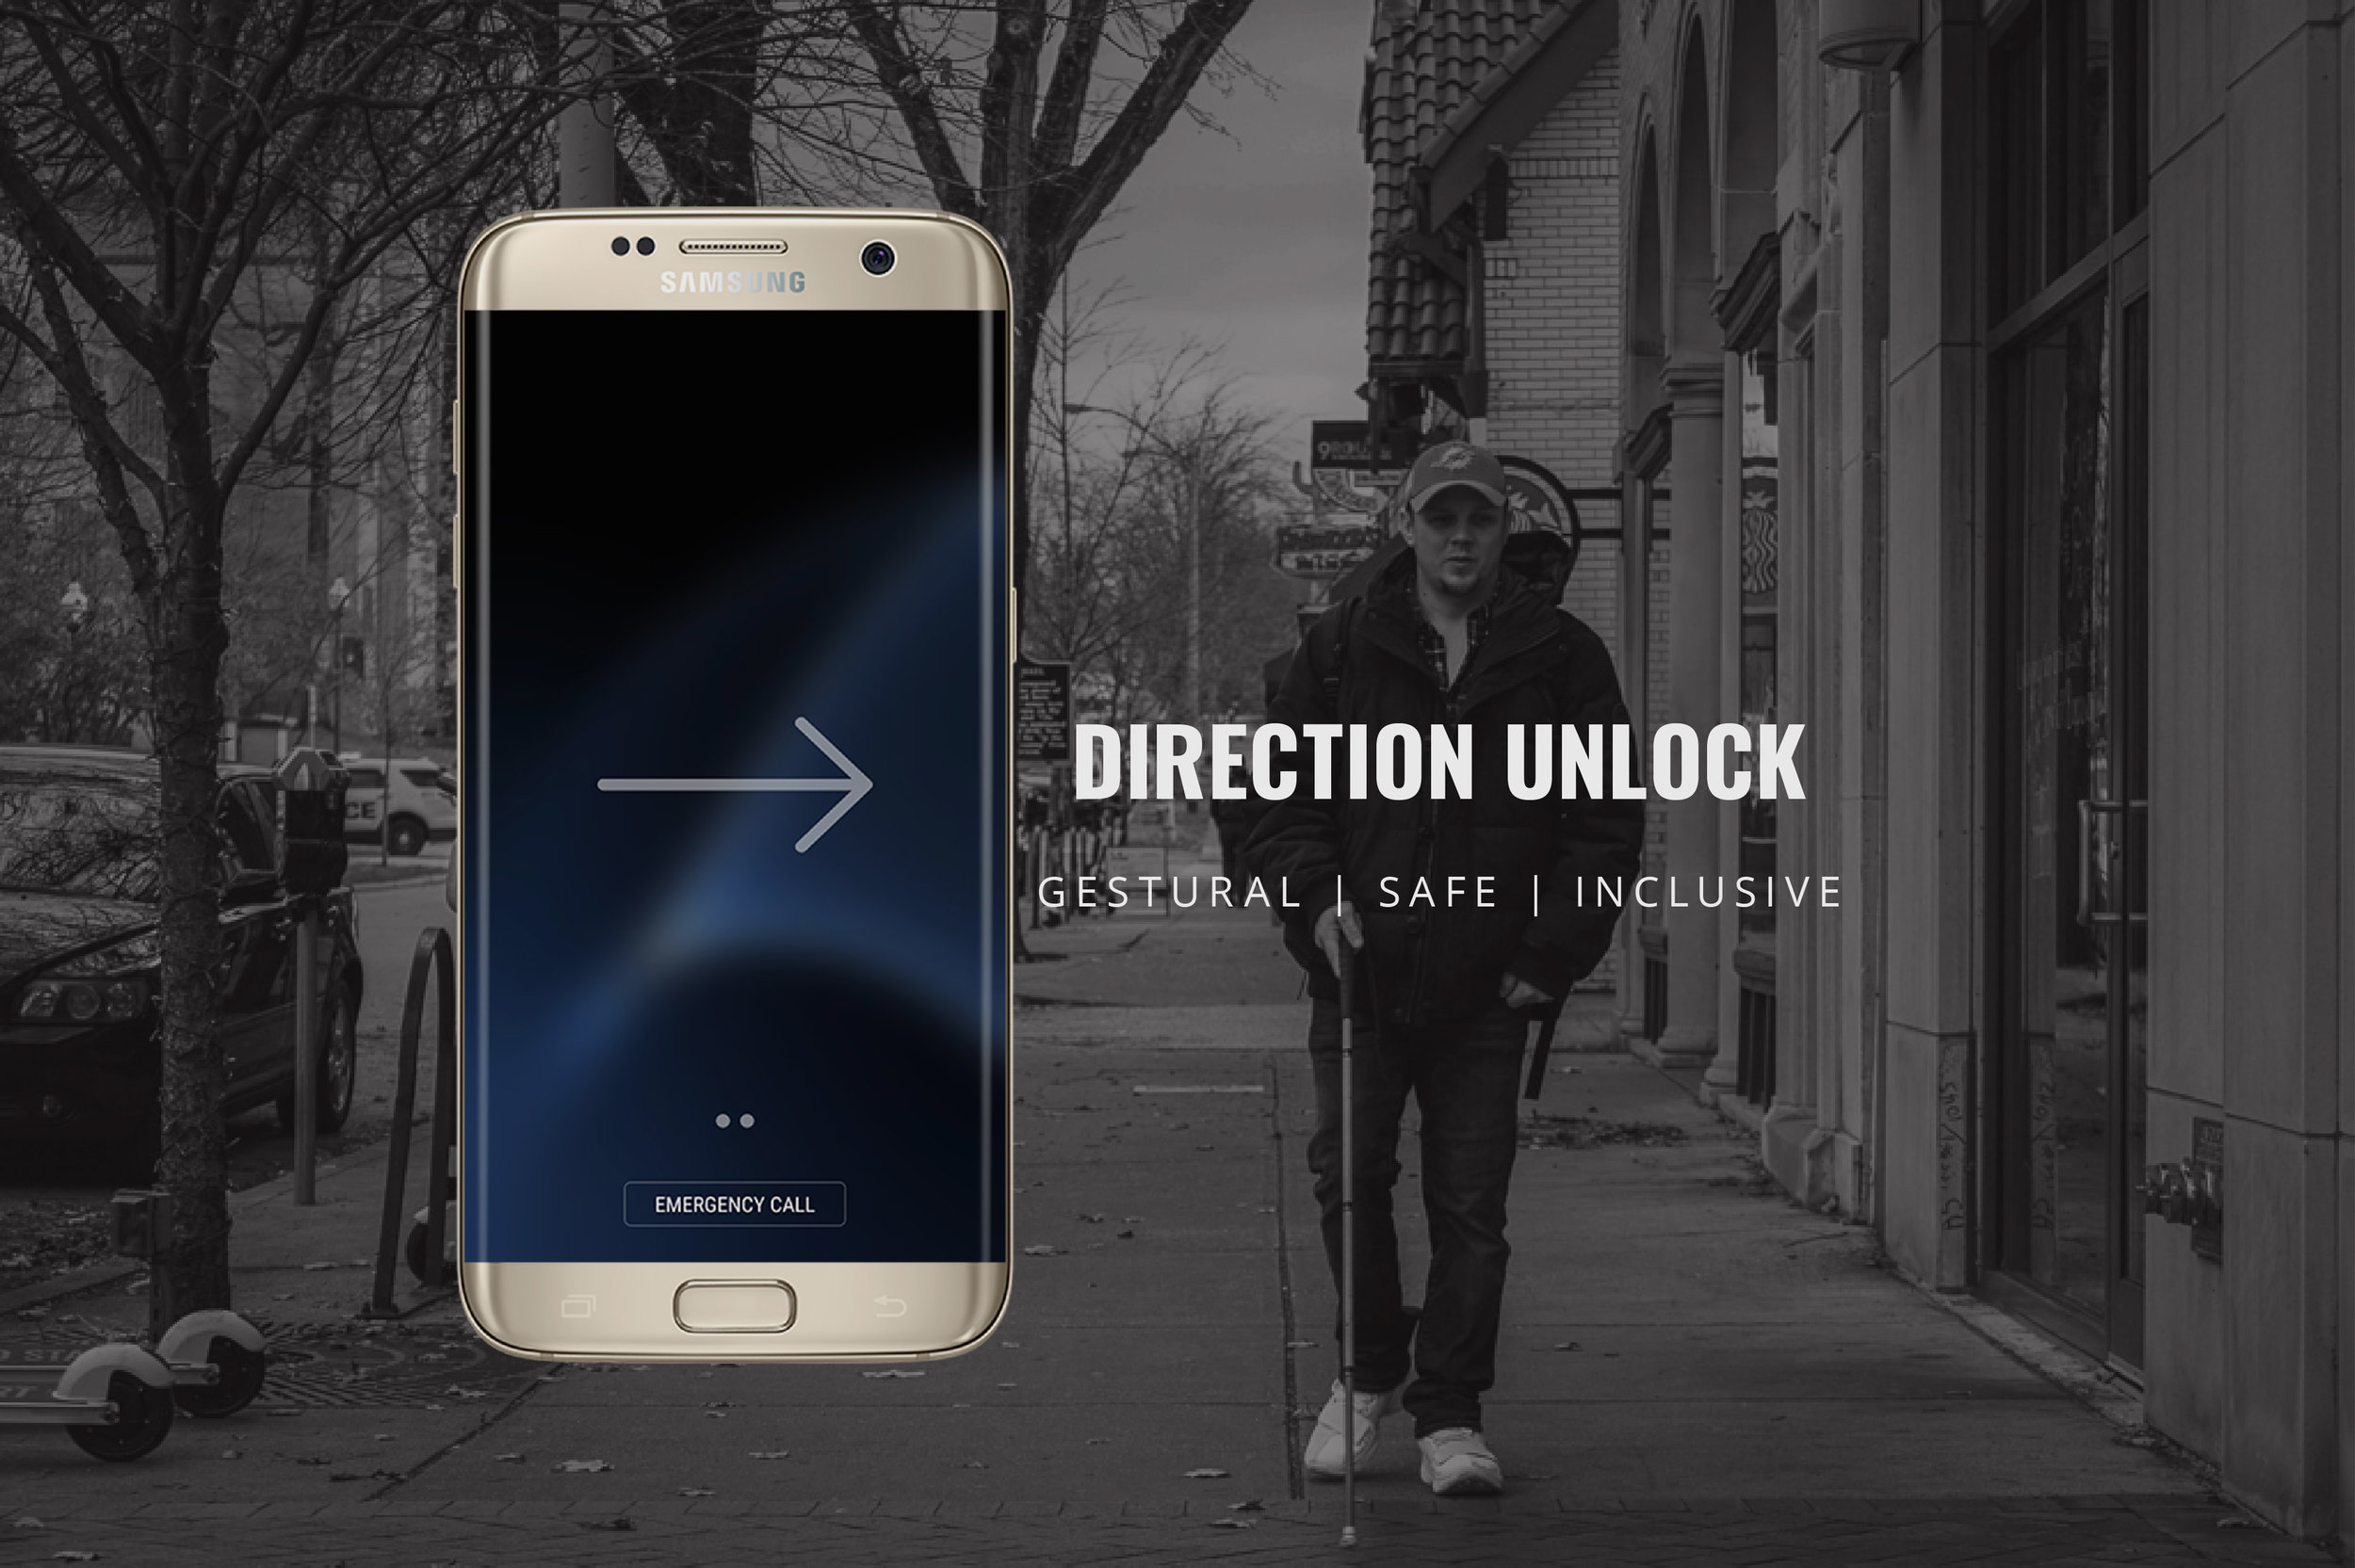 Design for Accessibility - UX design of a gestural smartphone unlock for users with vision impairments making unlocking phone gestural, safe and inclusive, intuitive, @ Samsung Electronics.